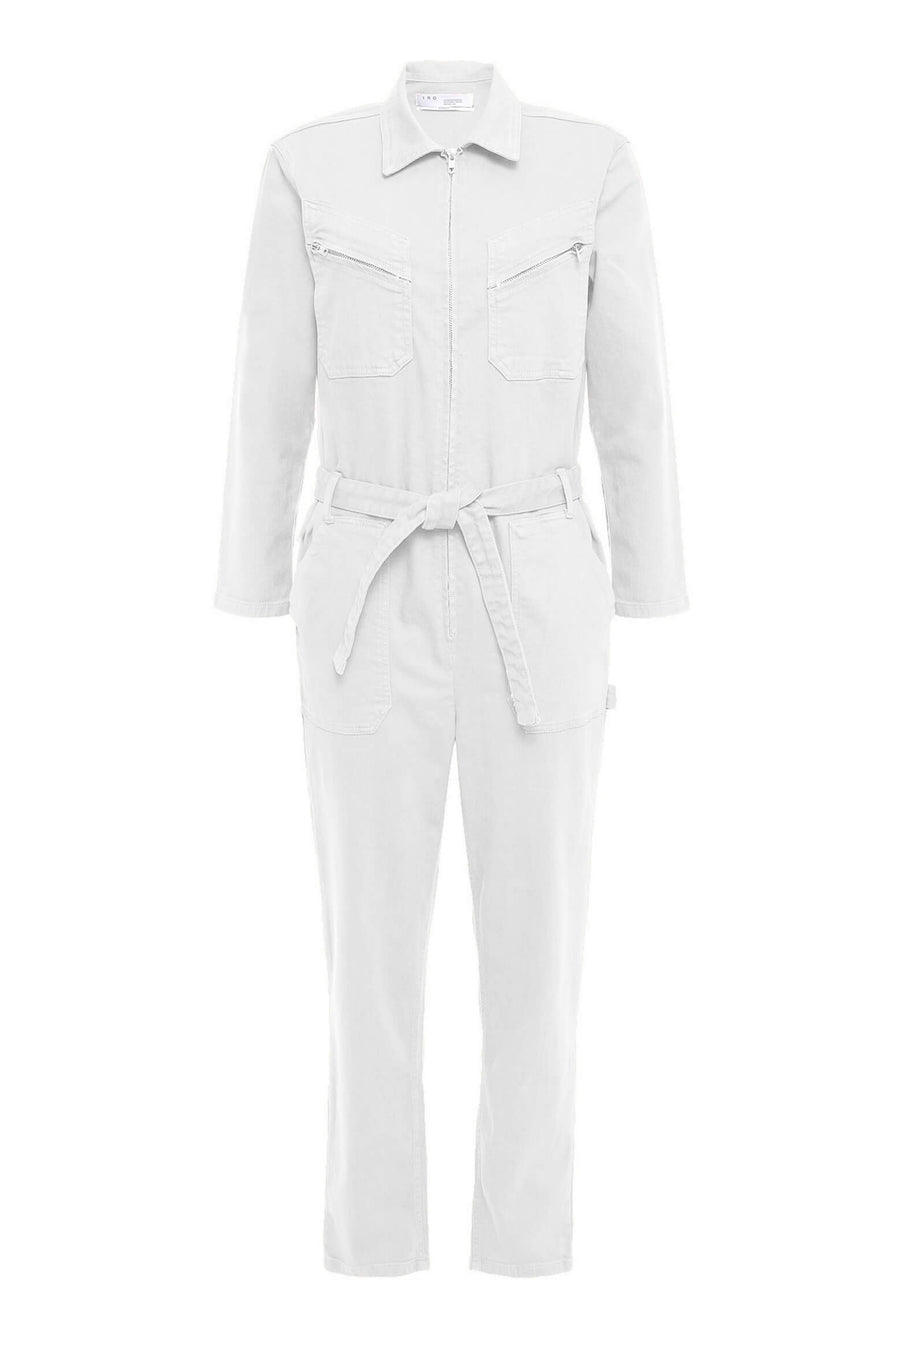 Iro Toudi Jumpsuit in Off White from The New Trend